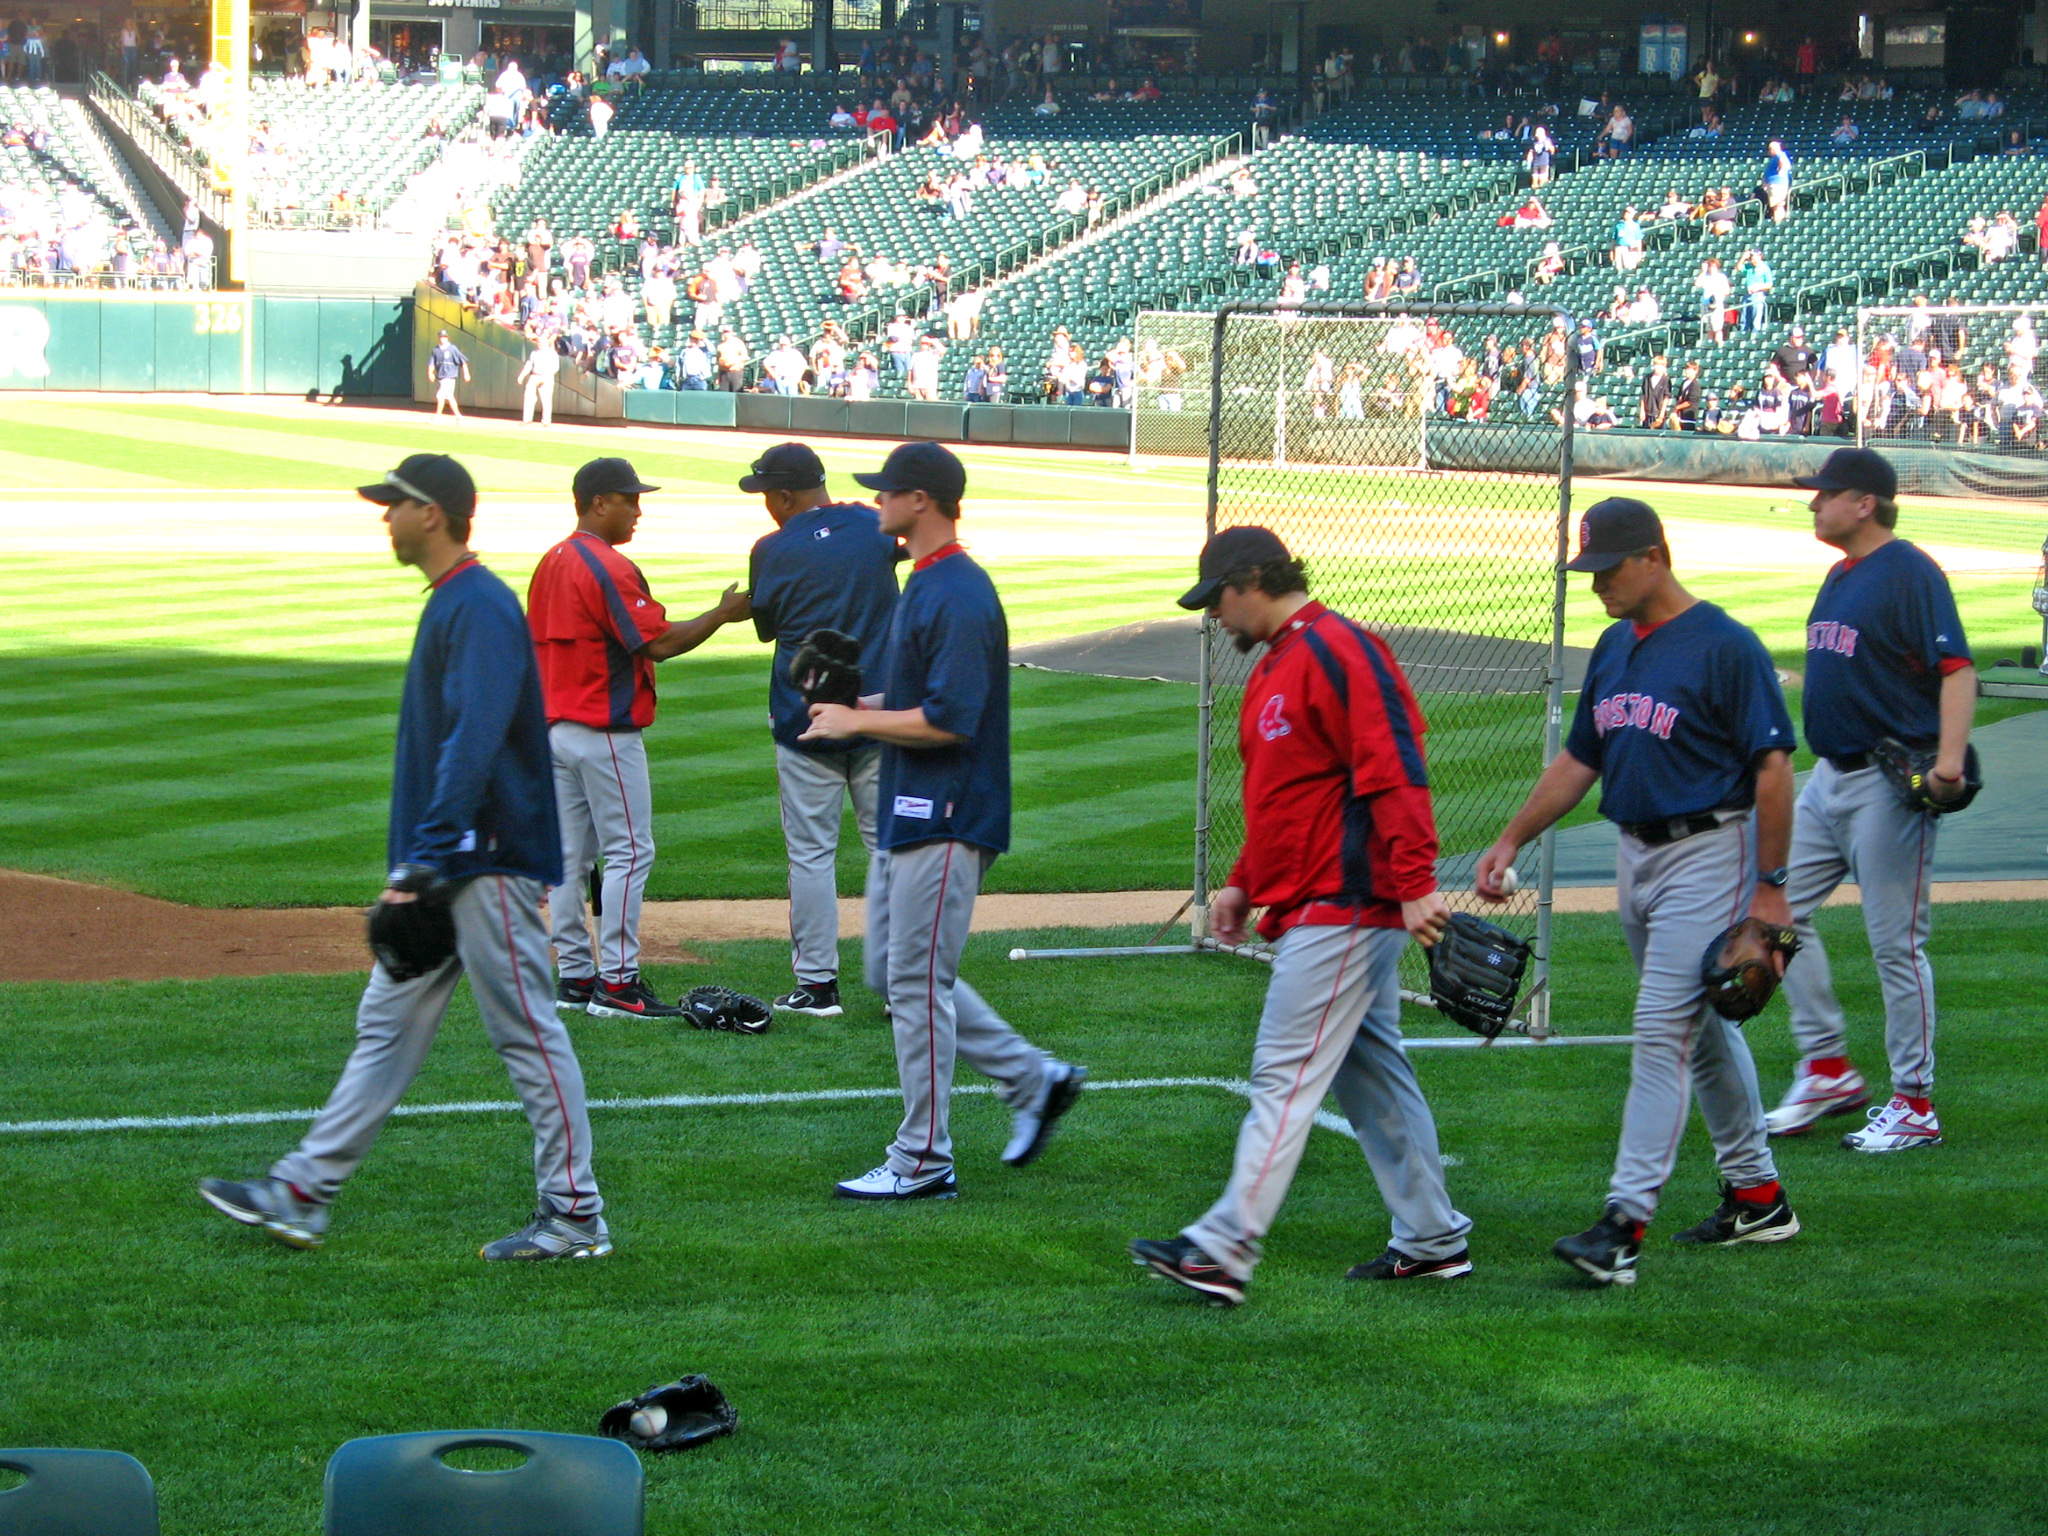 Redsoxpitchers